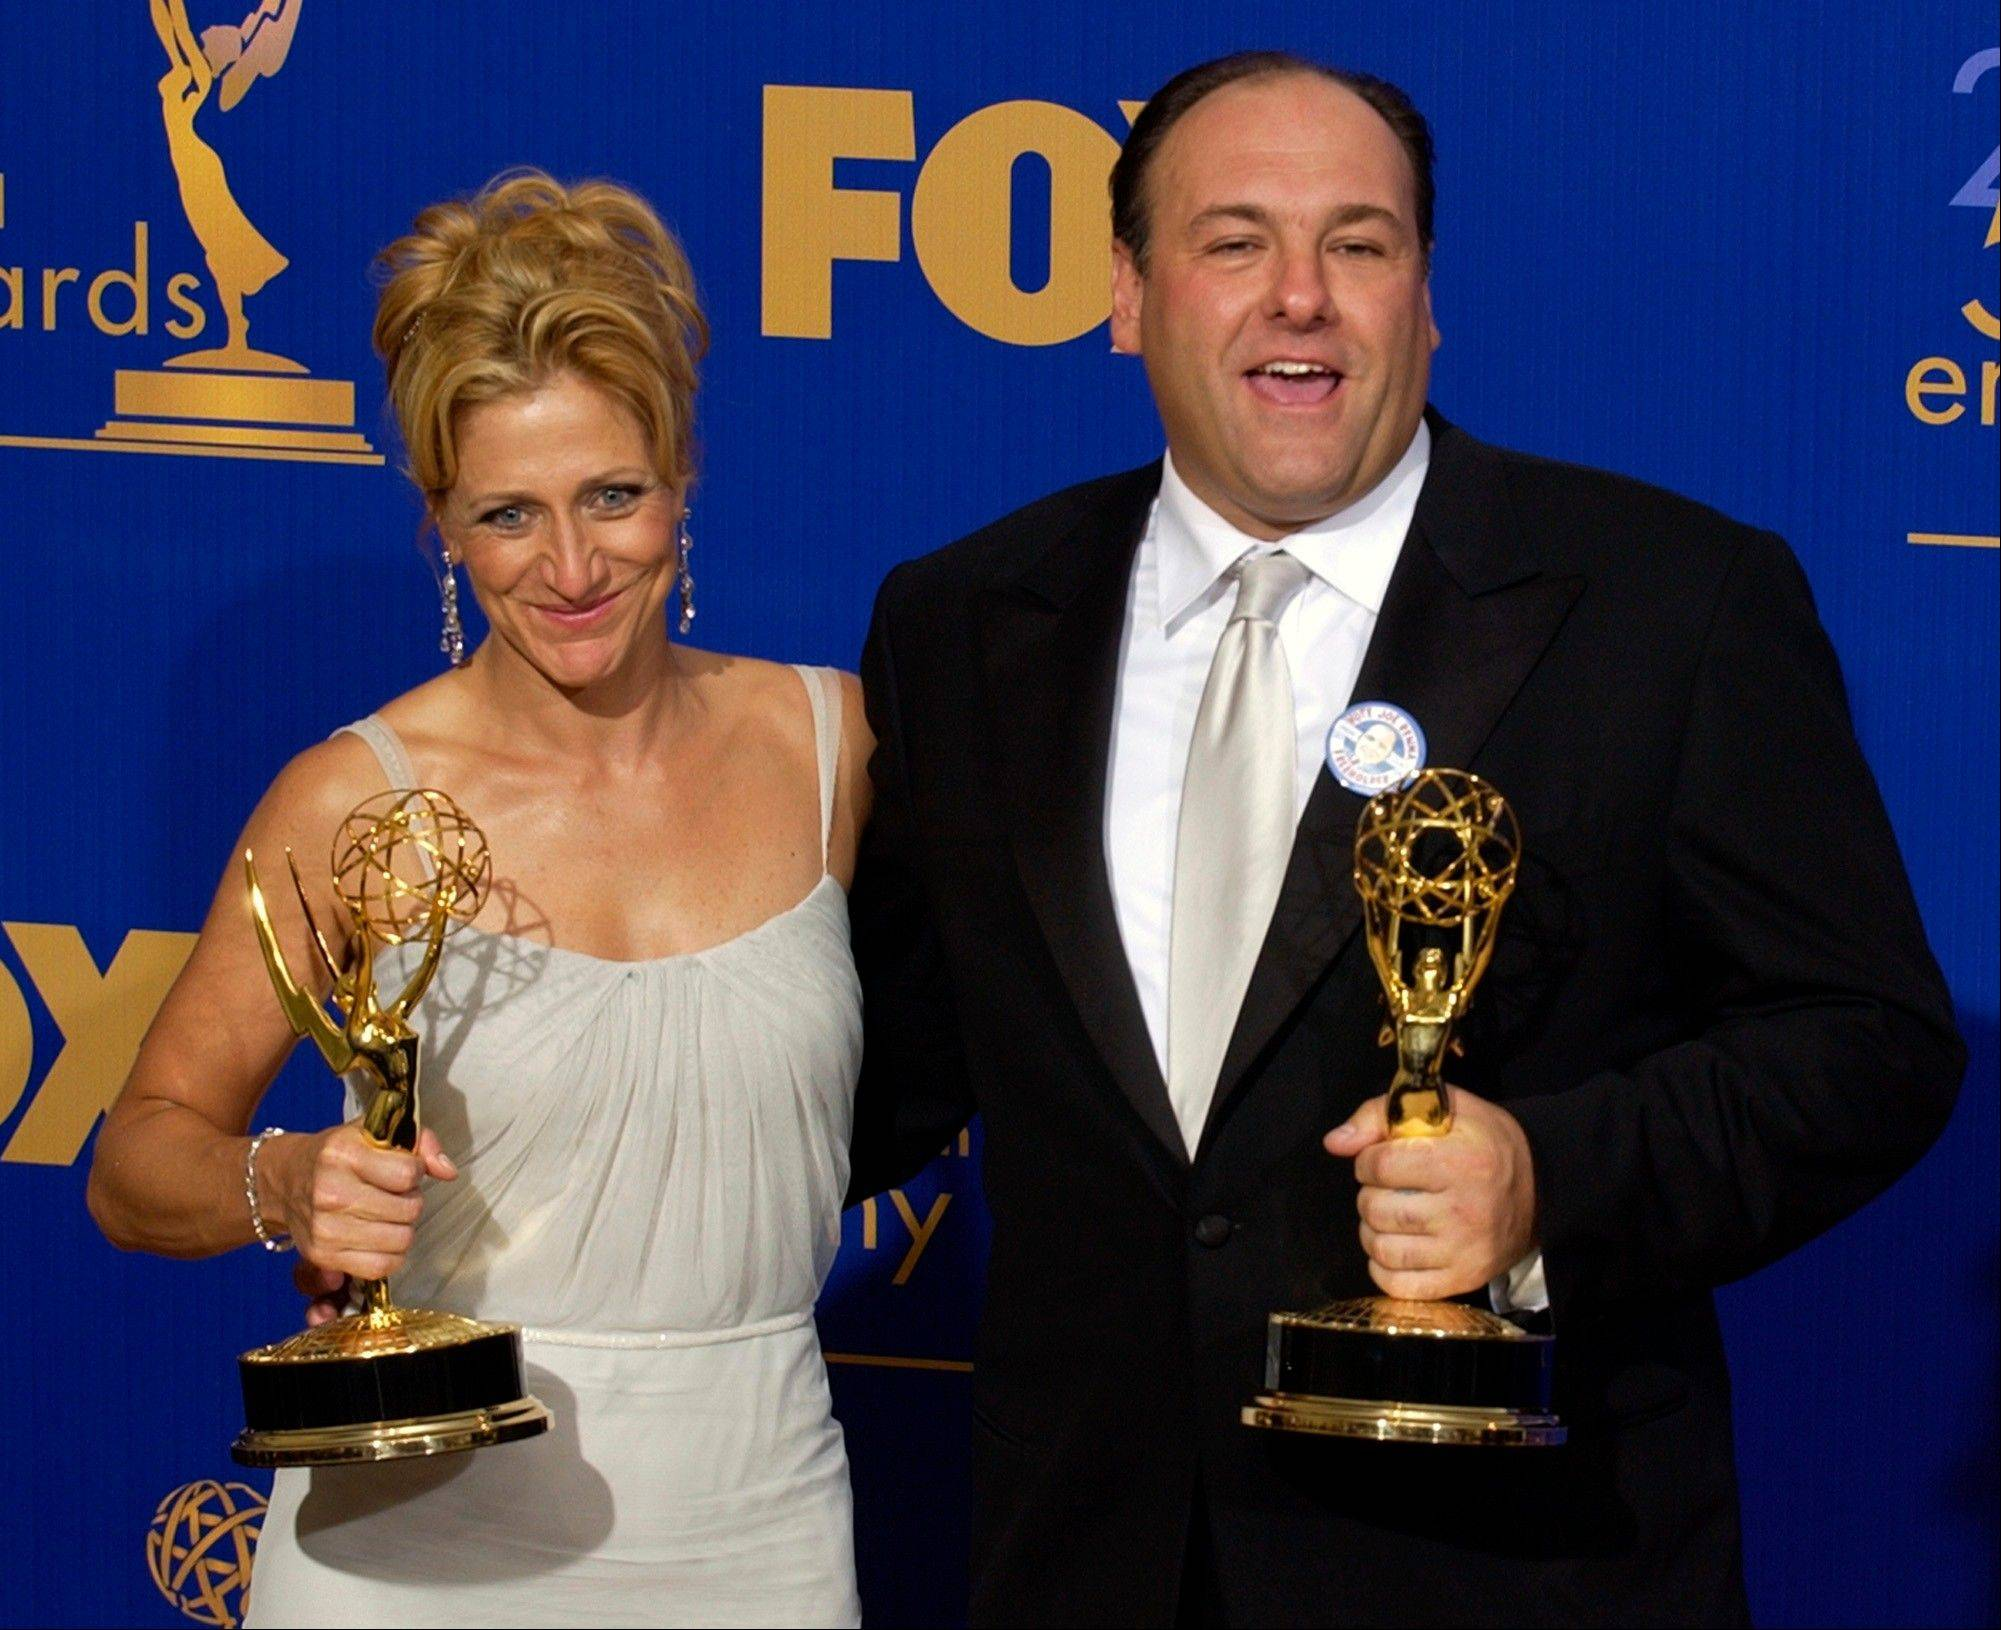 Edie Falco, left, and James Gandolfini at the 55th Annual Primetime Emmy Awards in 2003. Gandolfini died Wednesday, June 19, 2013, in Italy. He was 51.